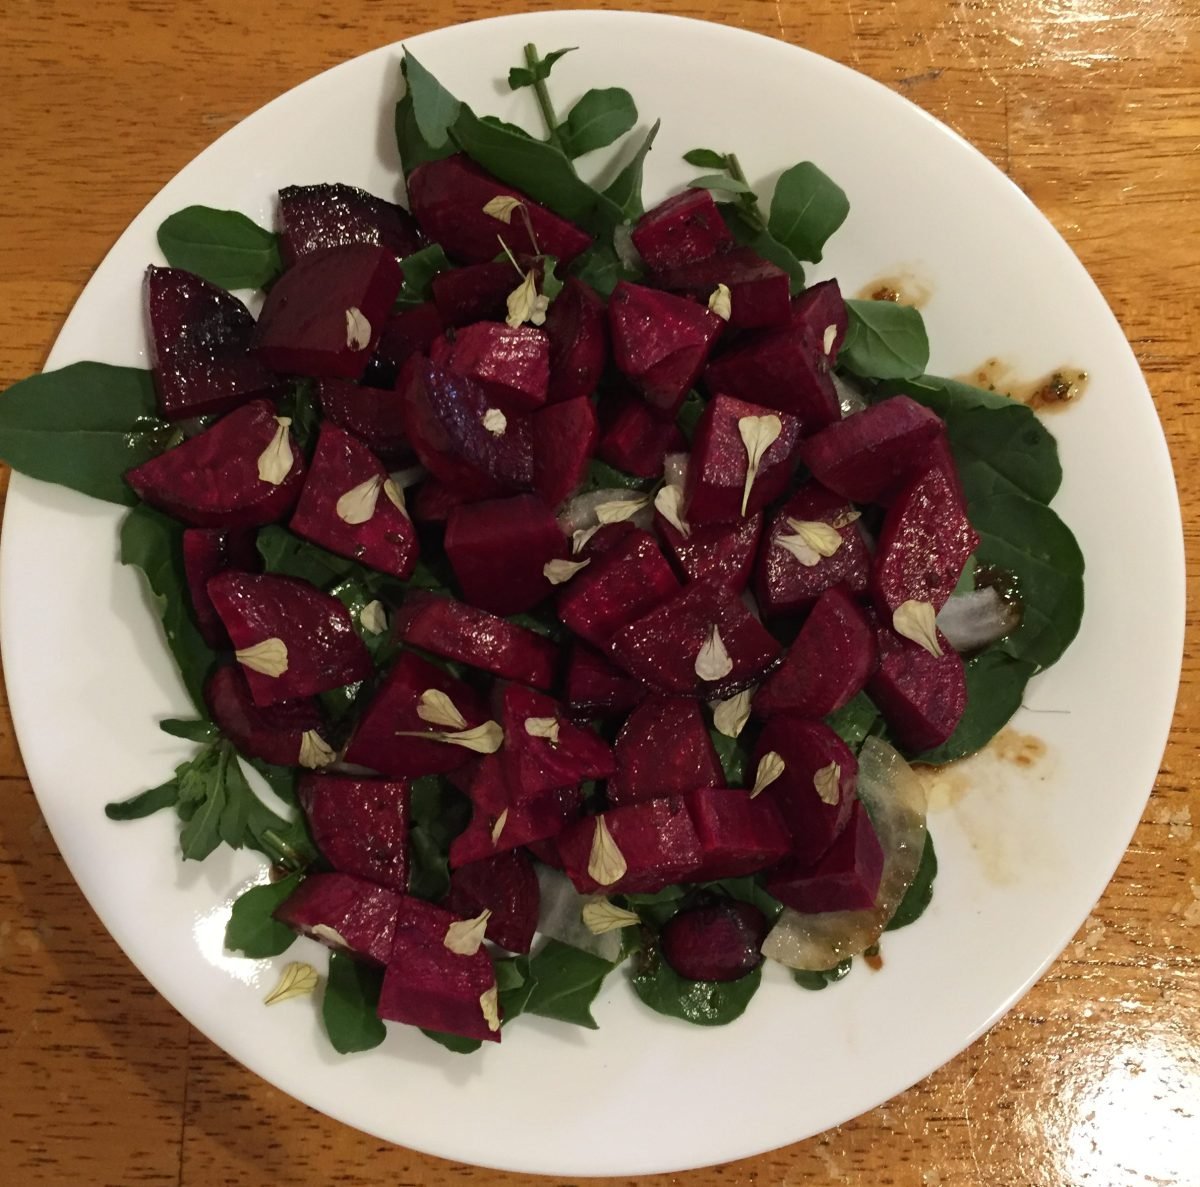 Rosemary-Balsamic Beet and Arugula Salad